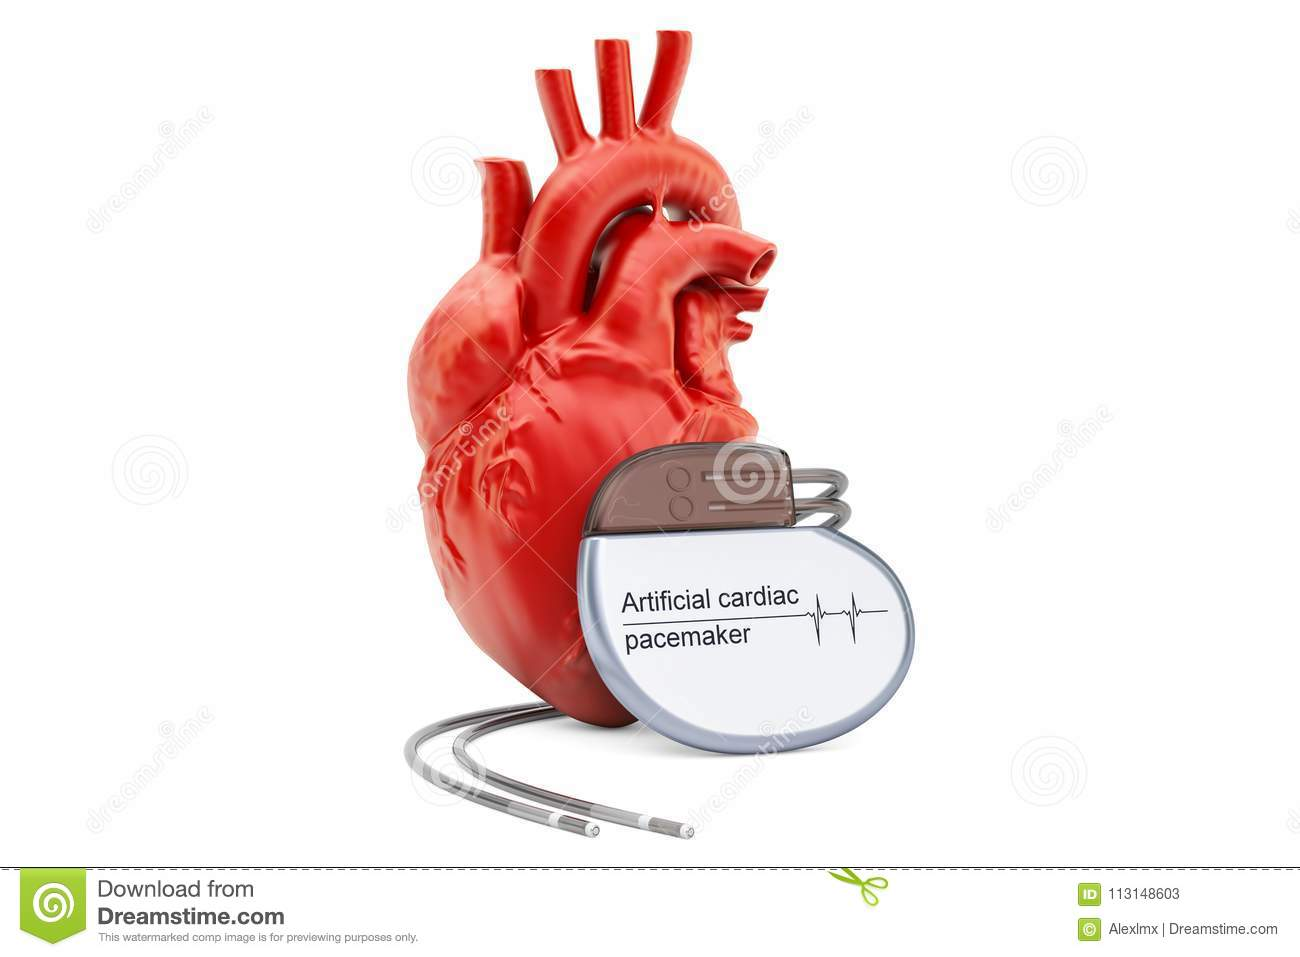 Artificial Cardiac Pacemaker With Human Heart 3d Rendering Stock